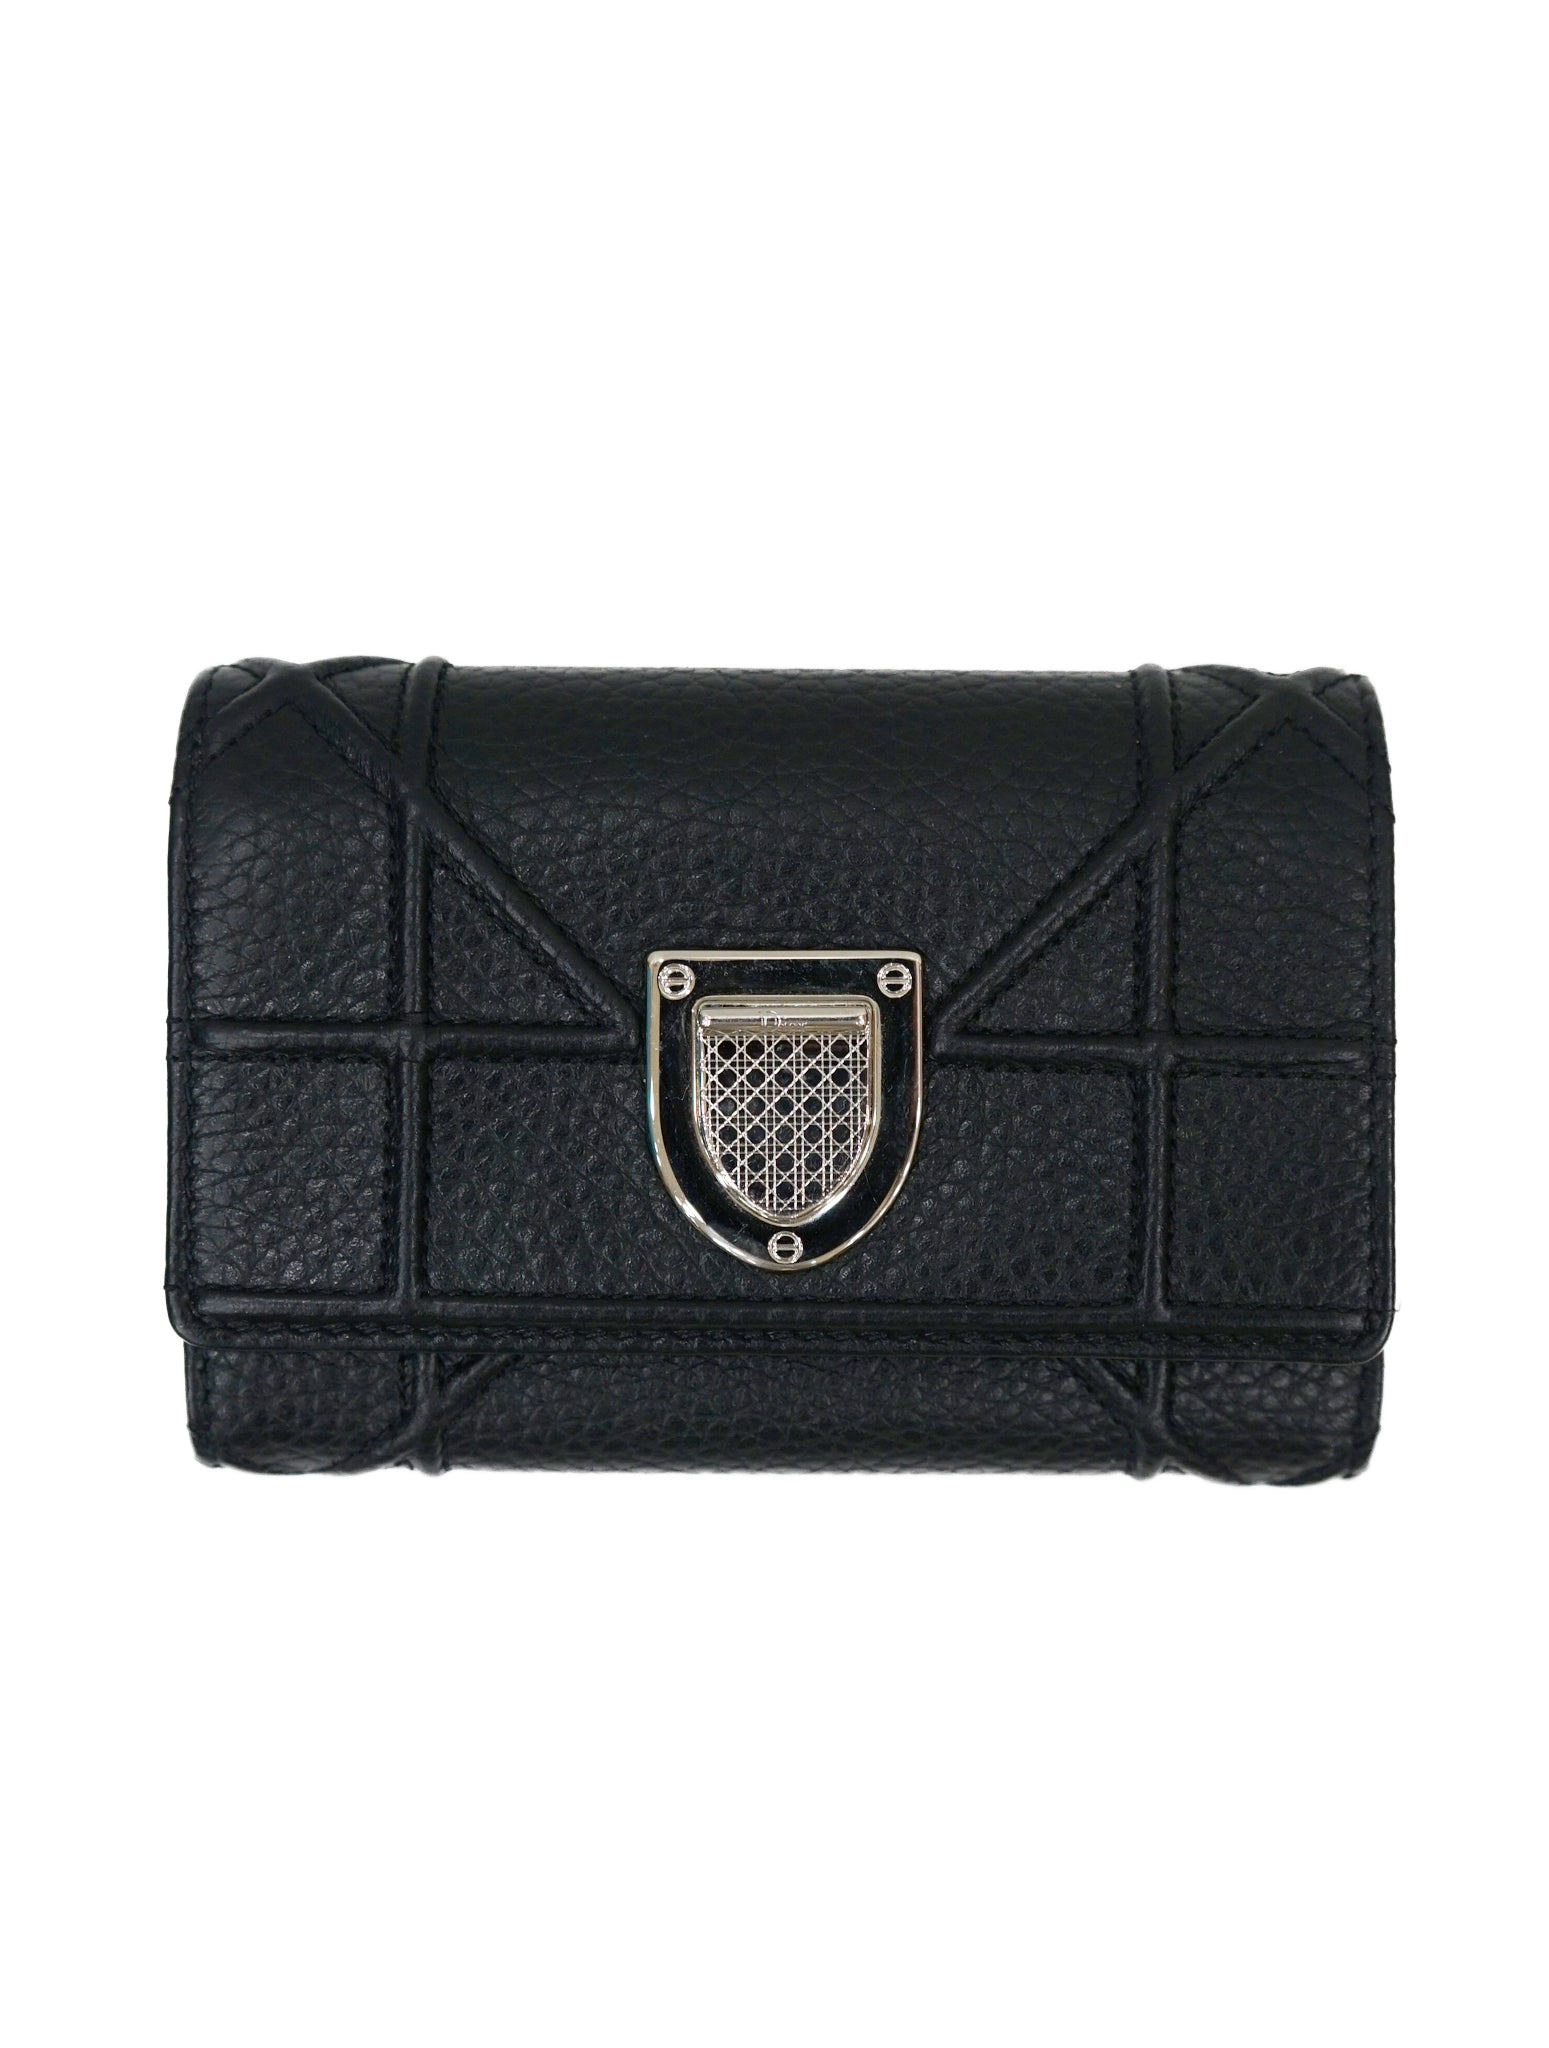 LEATHER DIORAMA ELANCEE FLAP WALLET